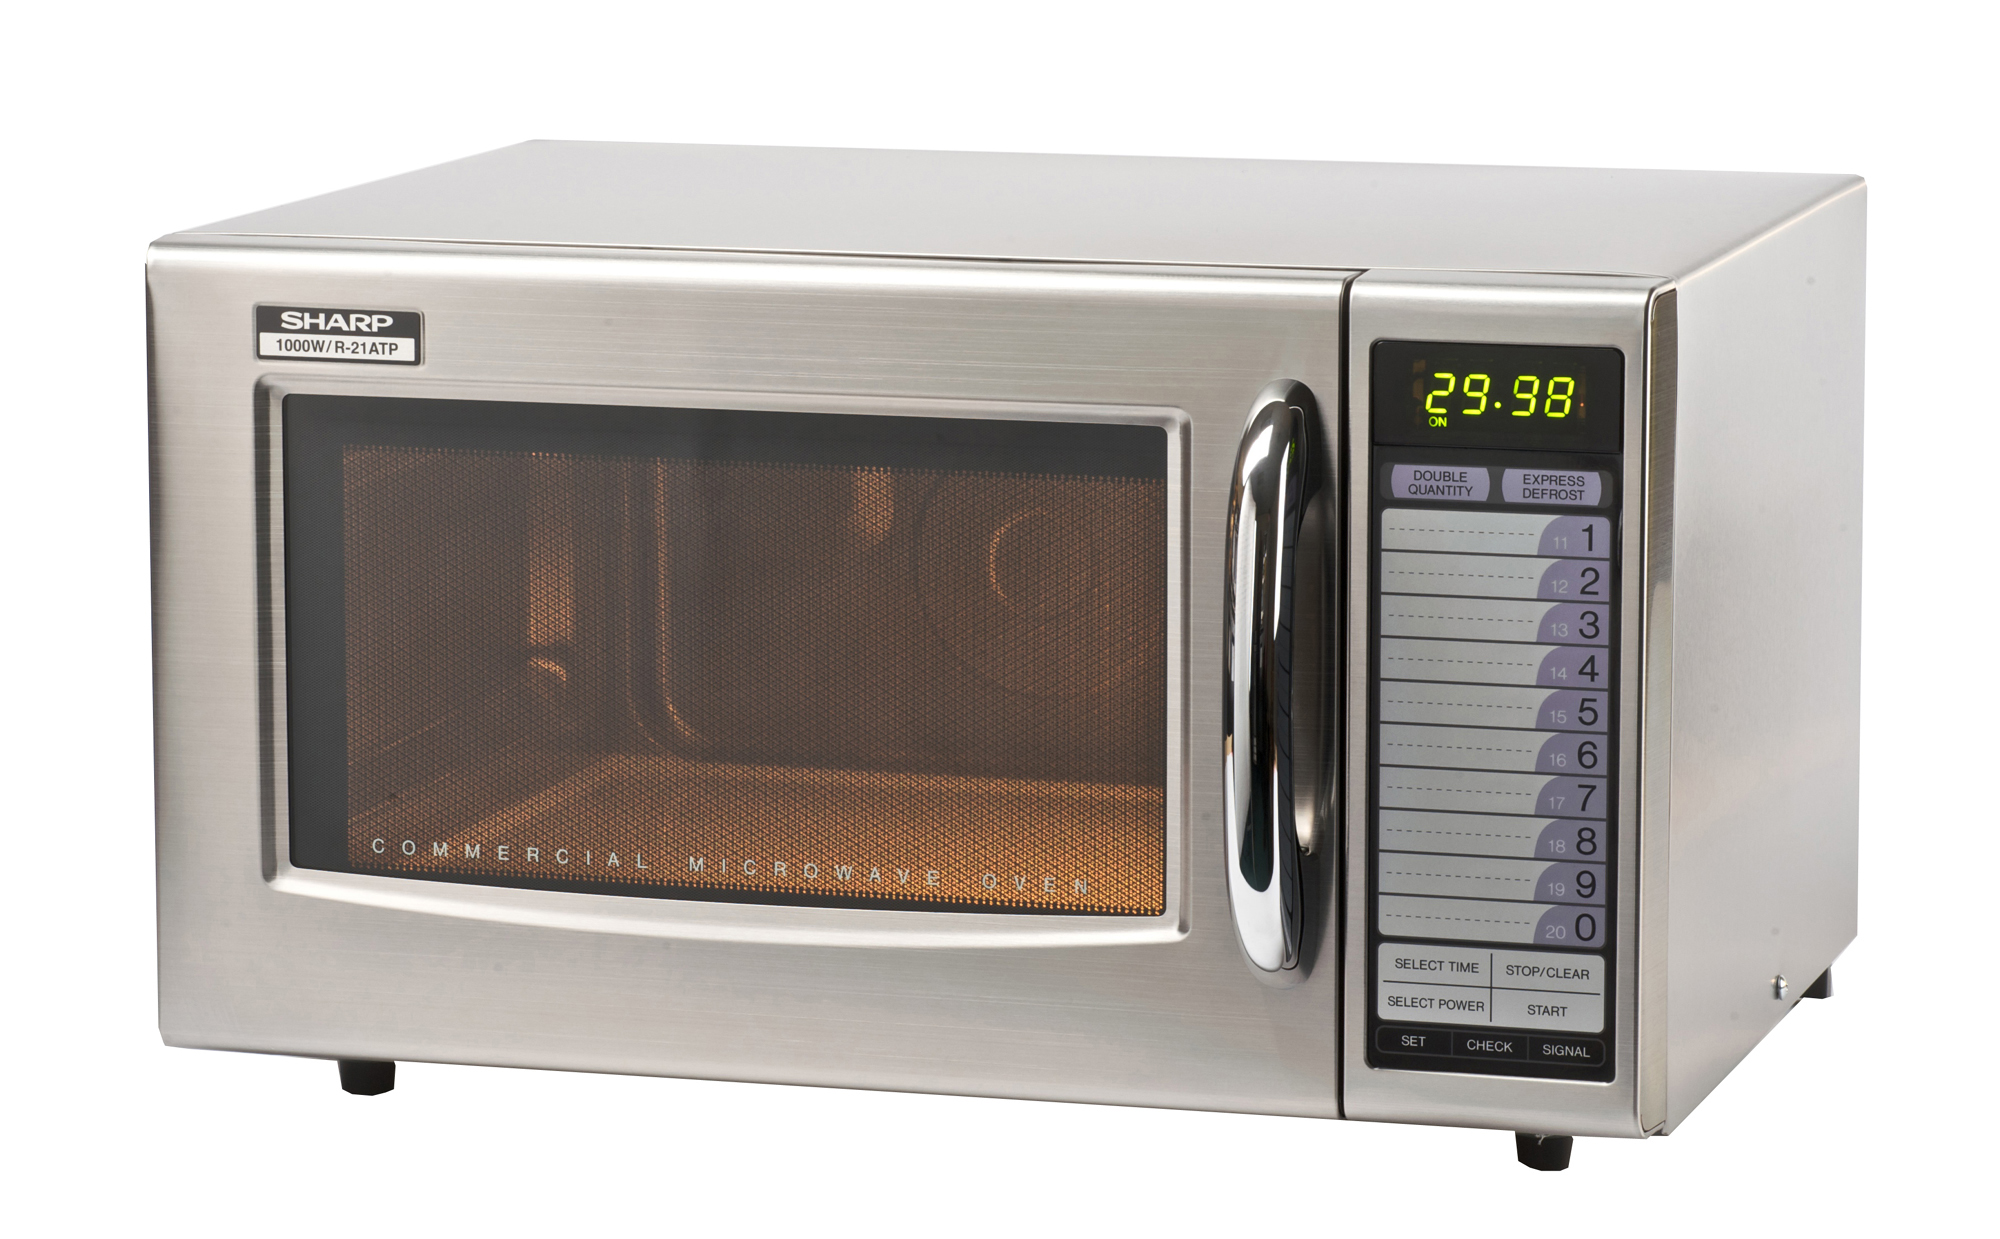 Sharp R21AT 1000 W Commercial Microwave